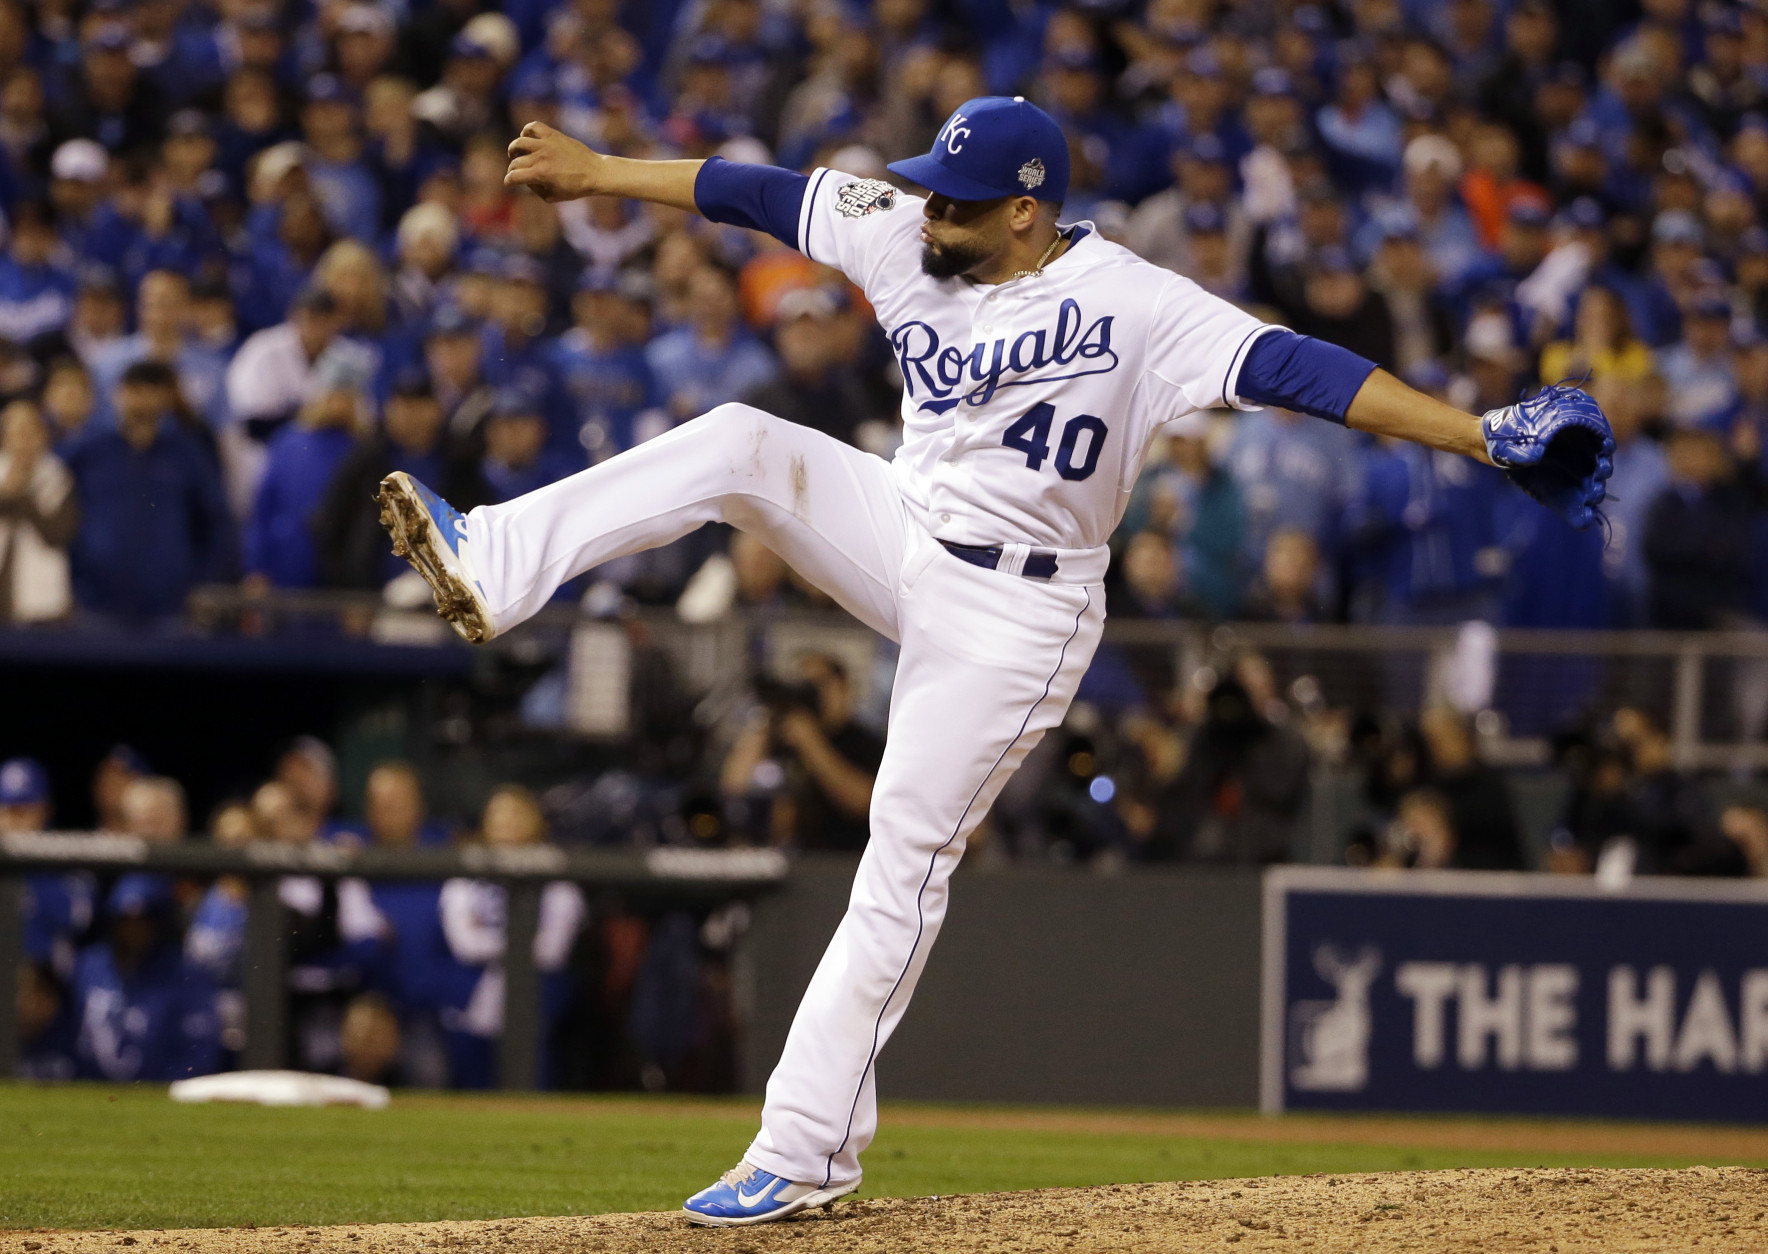 Kansas City Royals pitcher Kelvin Herrera throws during the eighth inning of Game 1 of the Major League Baseball World Series against the New York Mets Tuesday, Oct. 27, 2015, in Kansas City, Mo. (AP Photo/David J. Phillip)